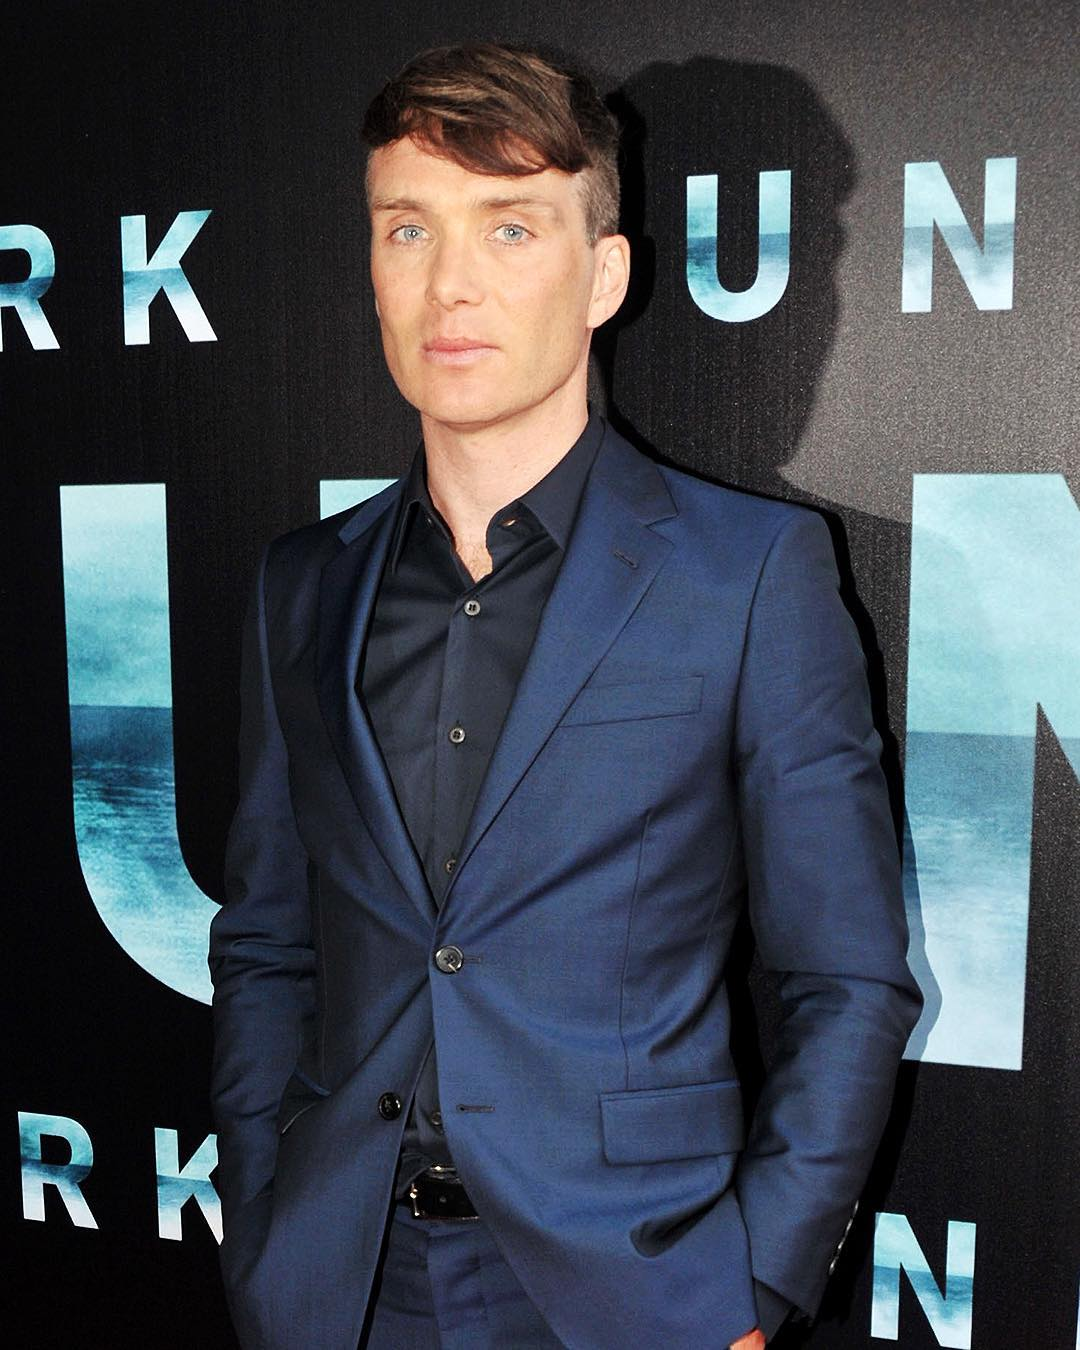 """Peaky Blinders"" star Cillian Murphy could be the next James Bond - BellaNaija"